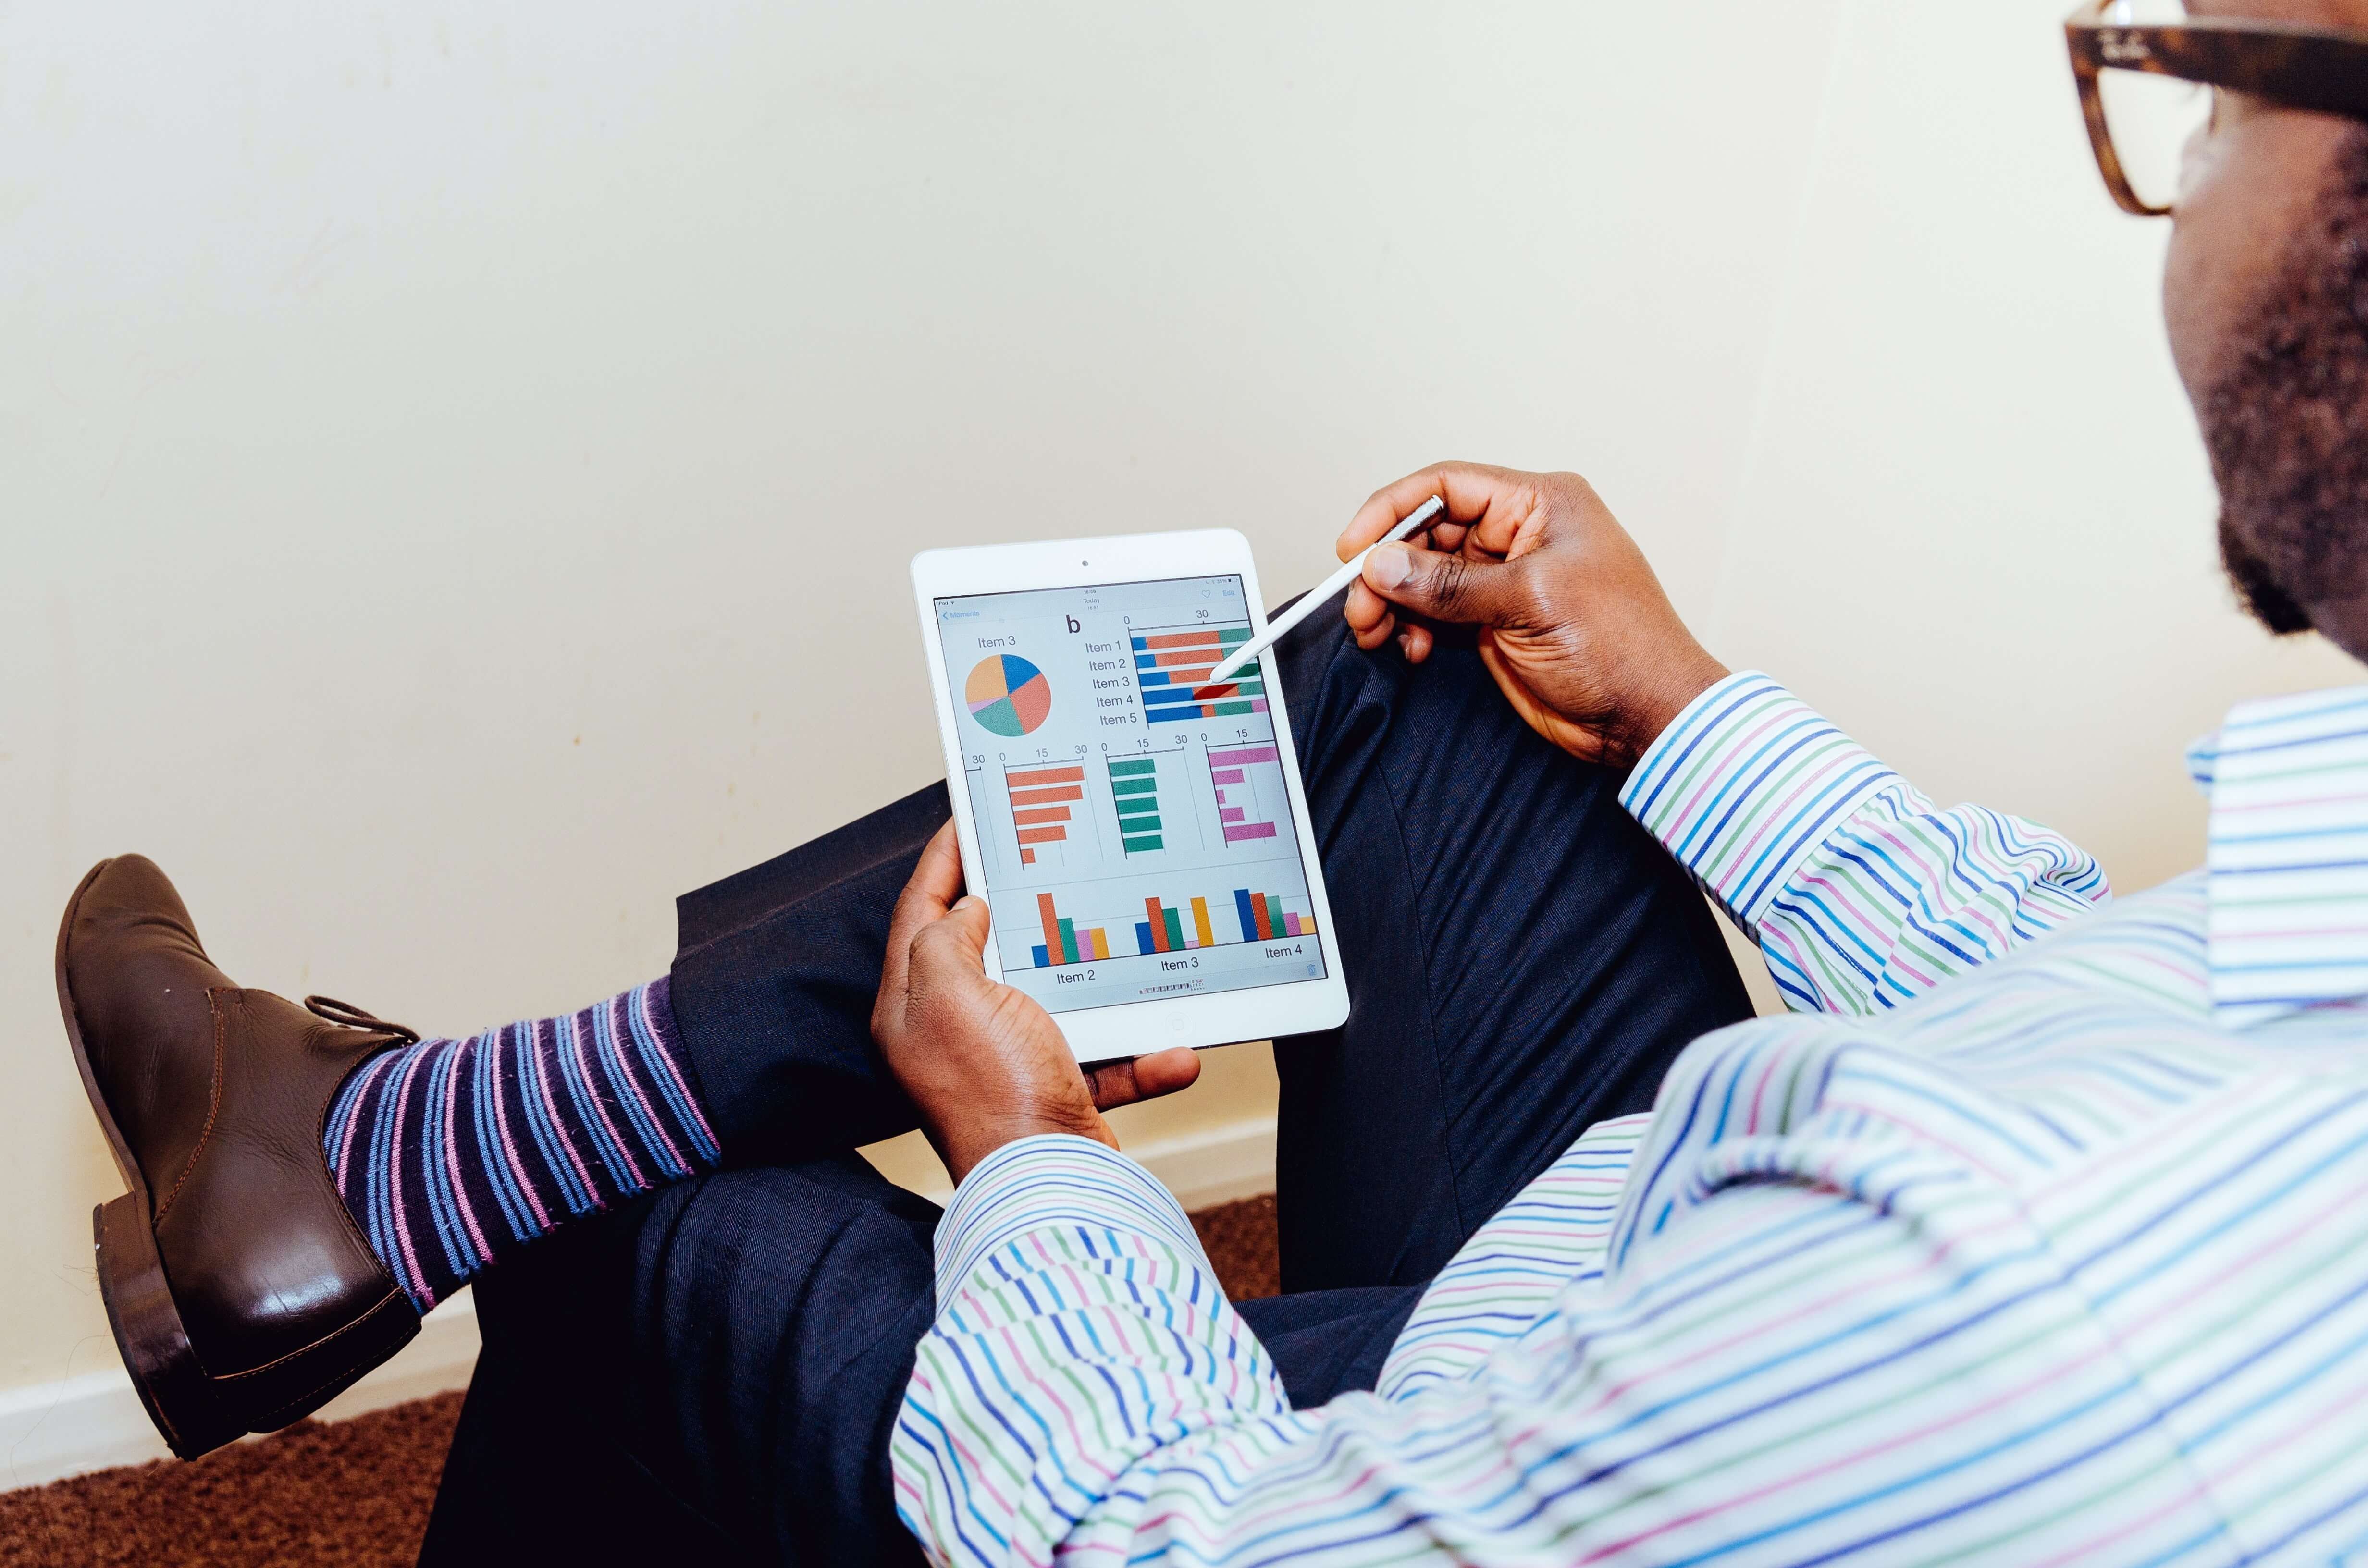 Customer data platform ( CDP ) represented through a man looking at a graphical representation on tablet screen